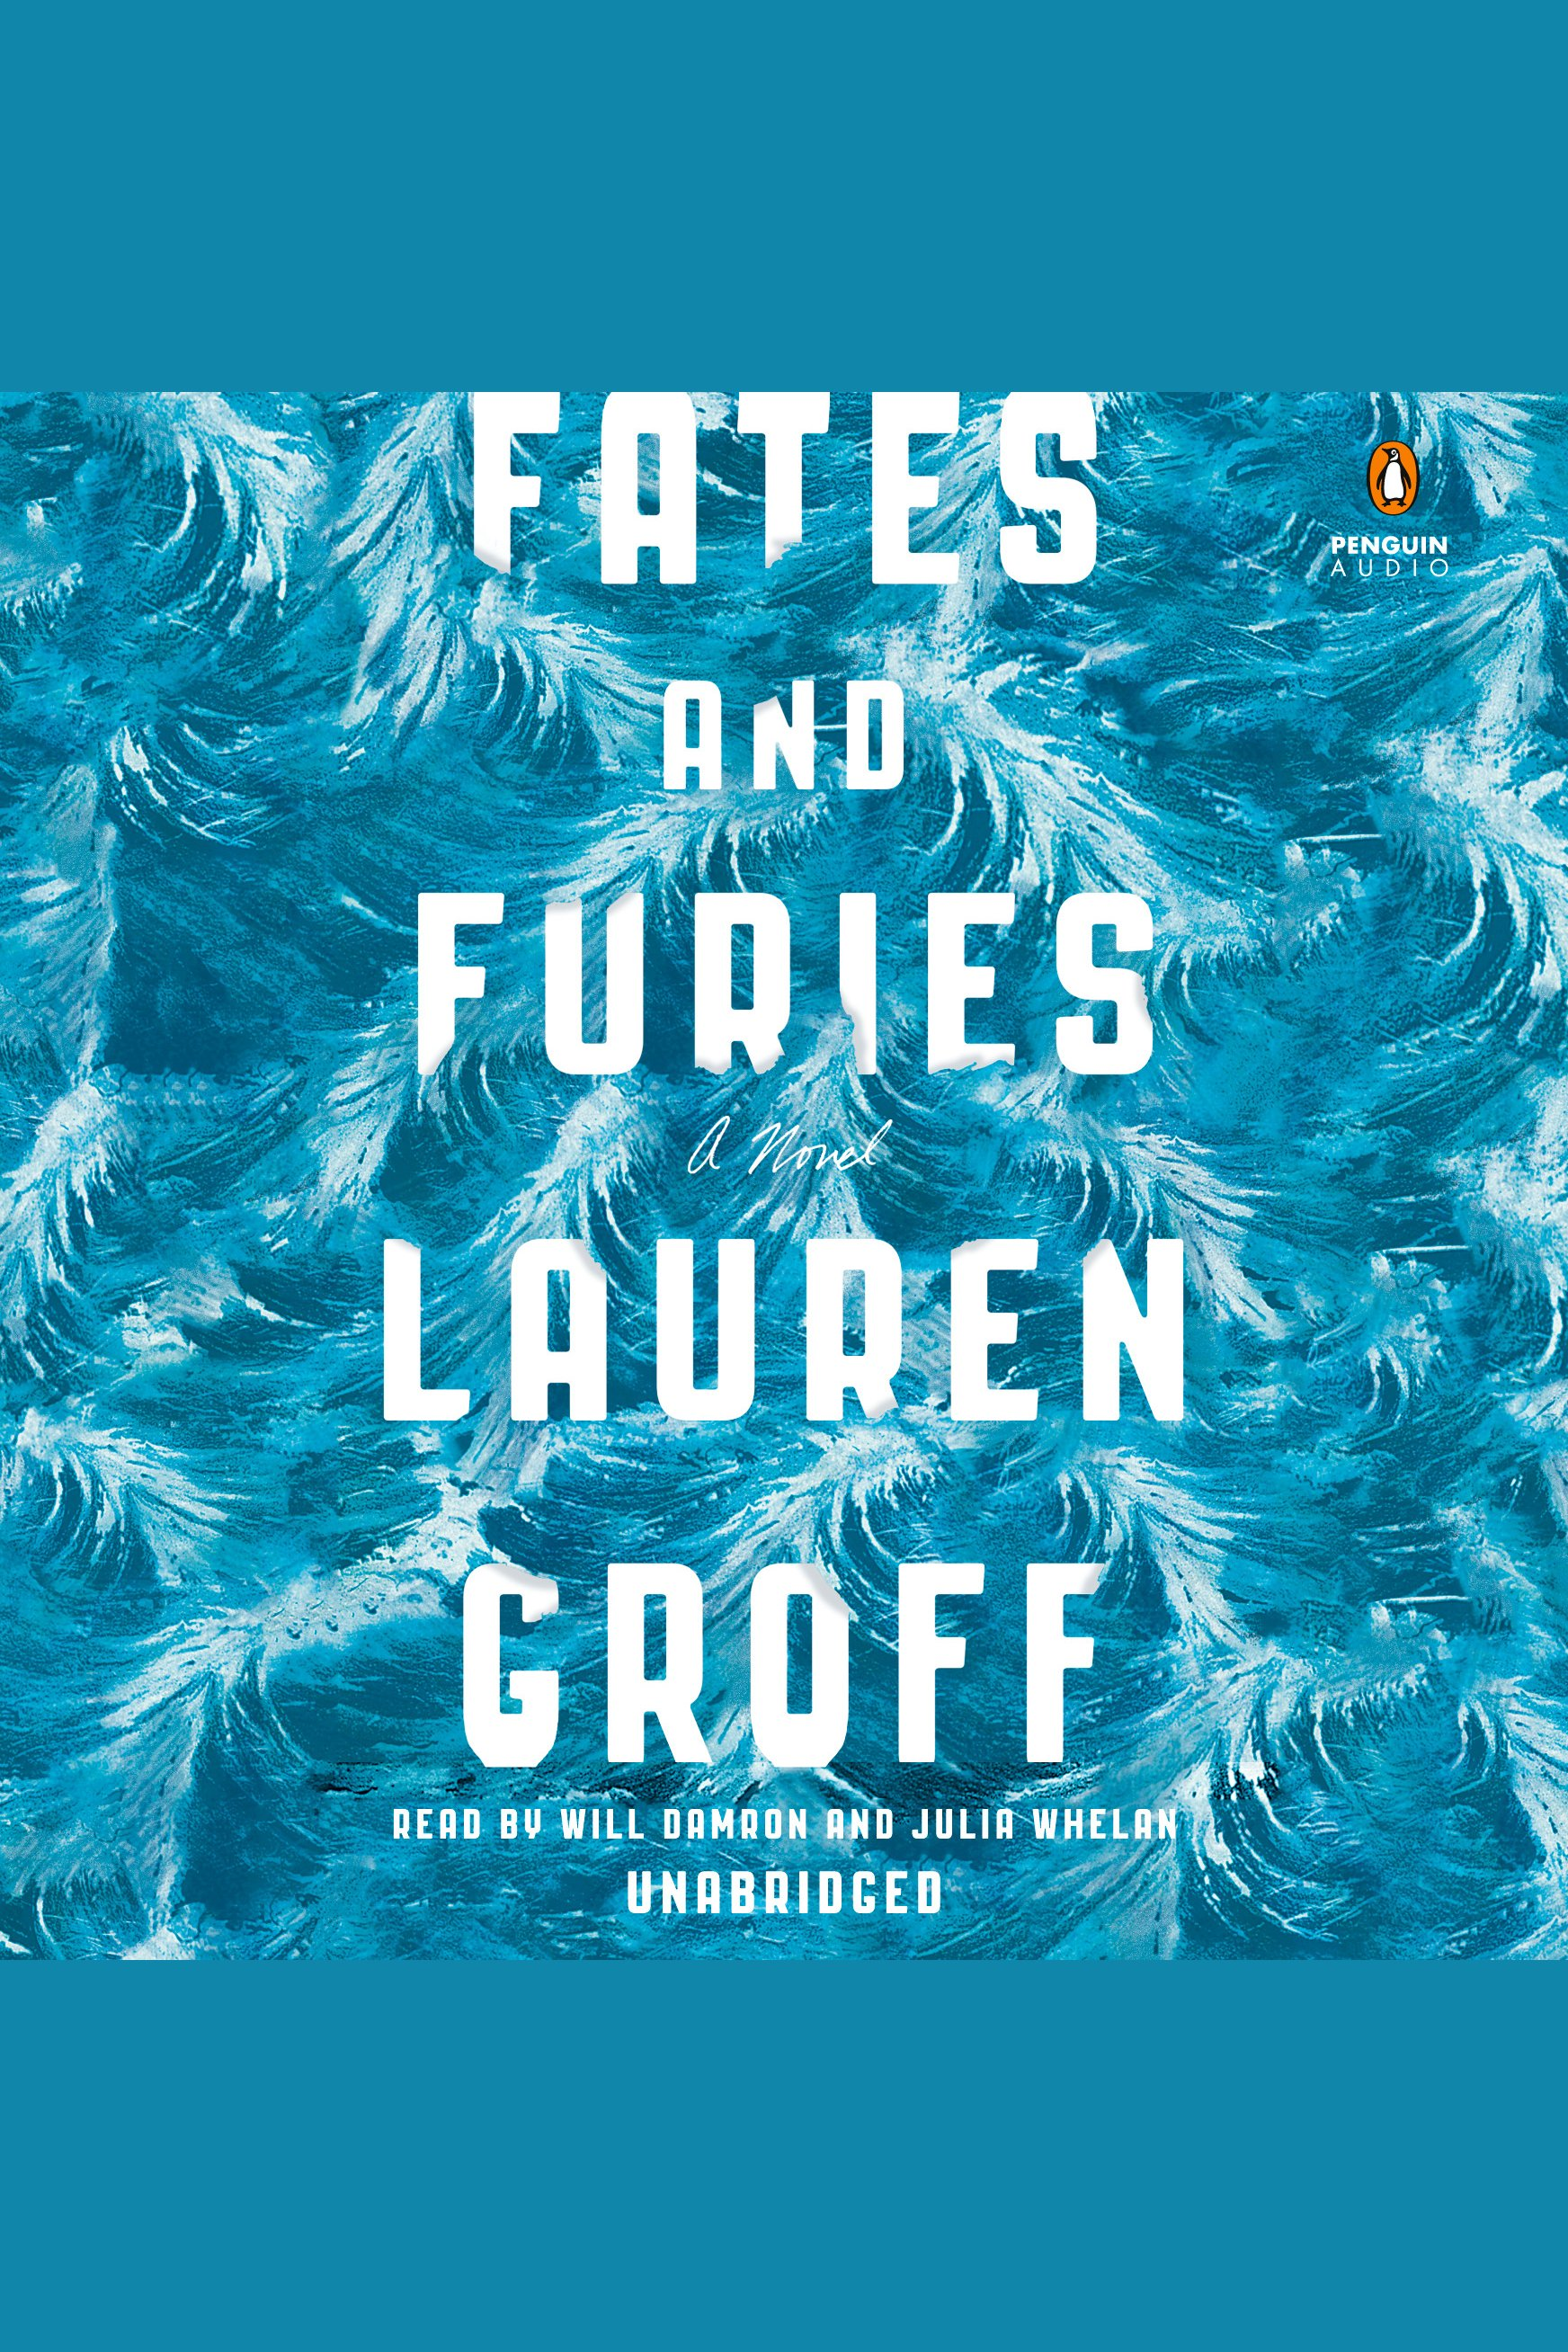 Fates and furies [AudioEbook] : a novel